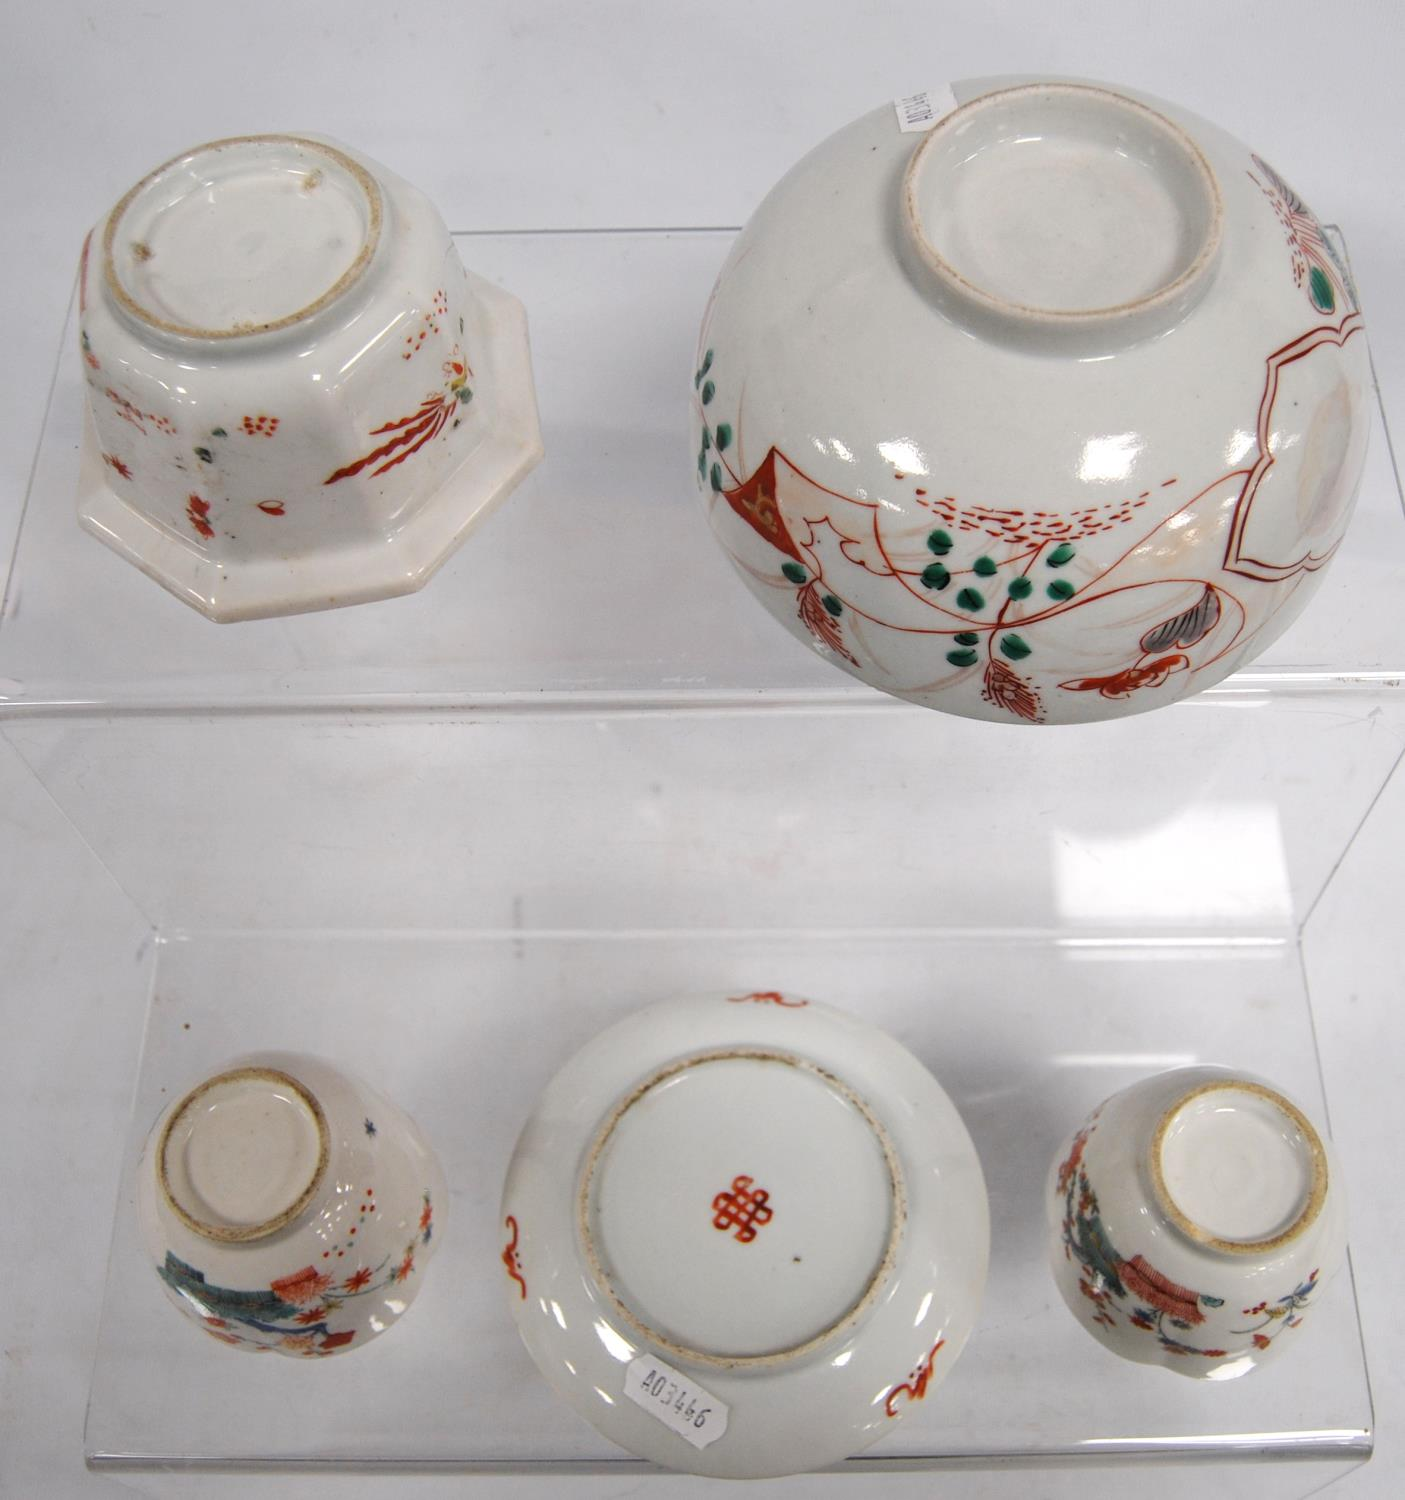 Two tea bowls, plate, octagonal bowl and a larger bowl, 14.5cm diameter. (5) - Image 3 of 3